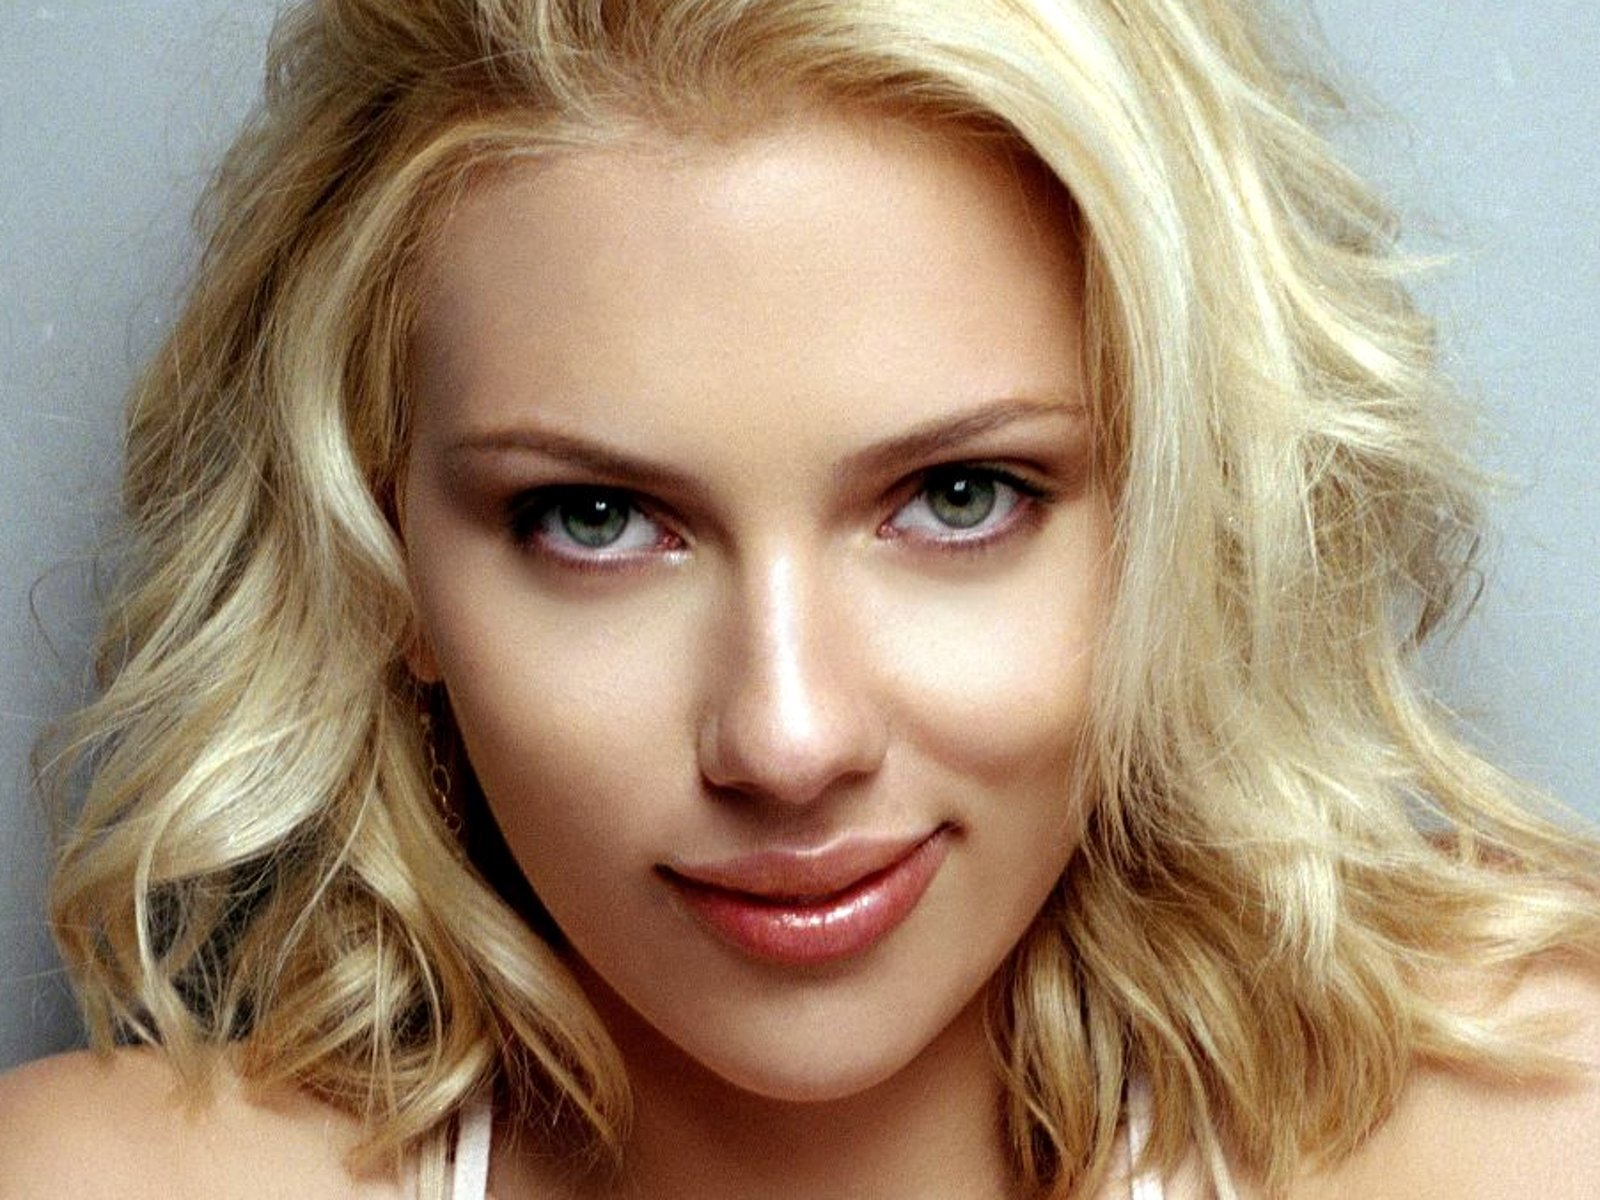 Free Actress Wallpaper: Scarlett Johansson hot, scarlett